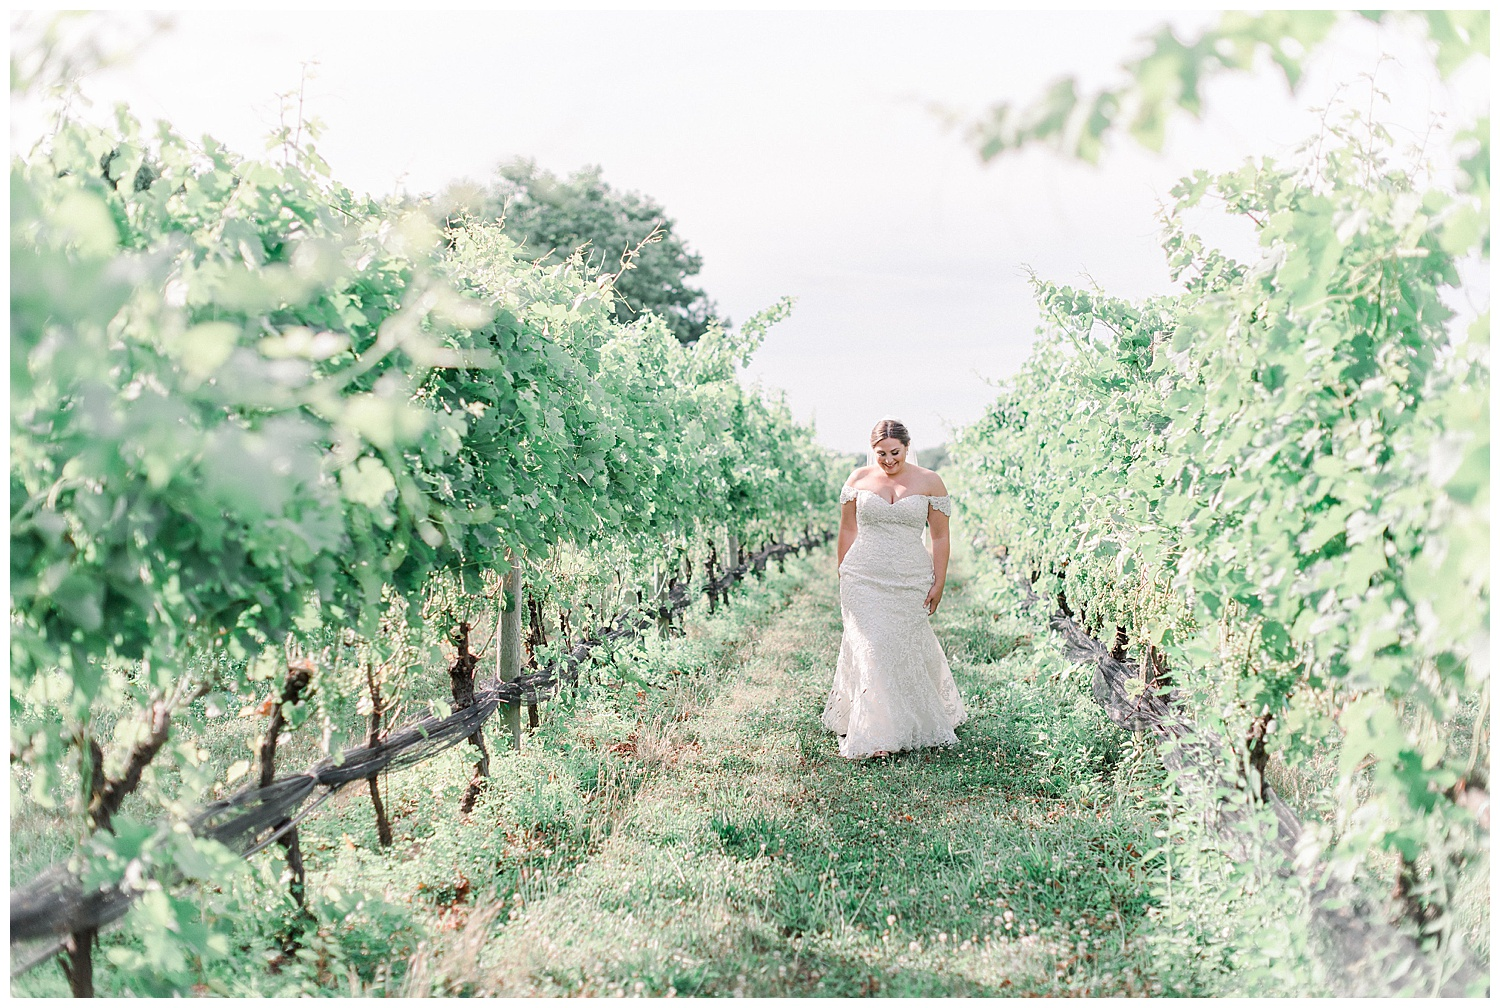 The Vineyards at Aquebogue Wedding | North Fork Wedding | Vineyard Wedding | Aquebogue, NY | www.redoakweddings.com